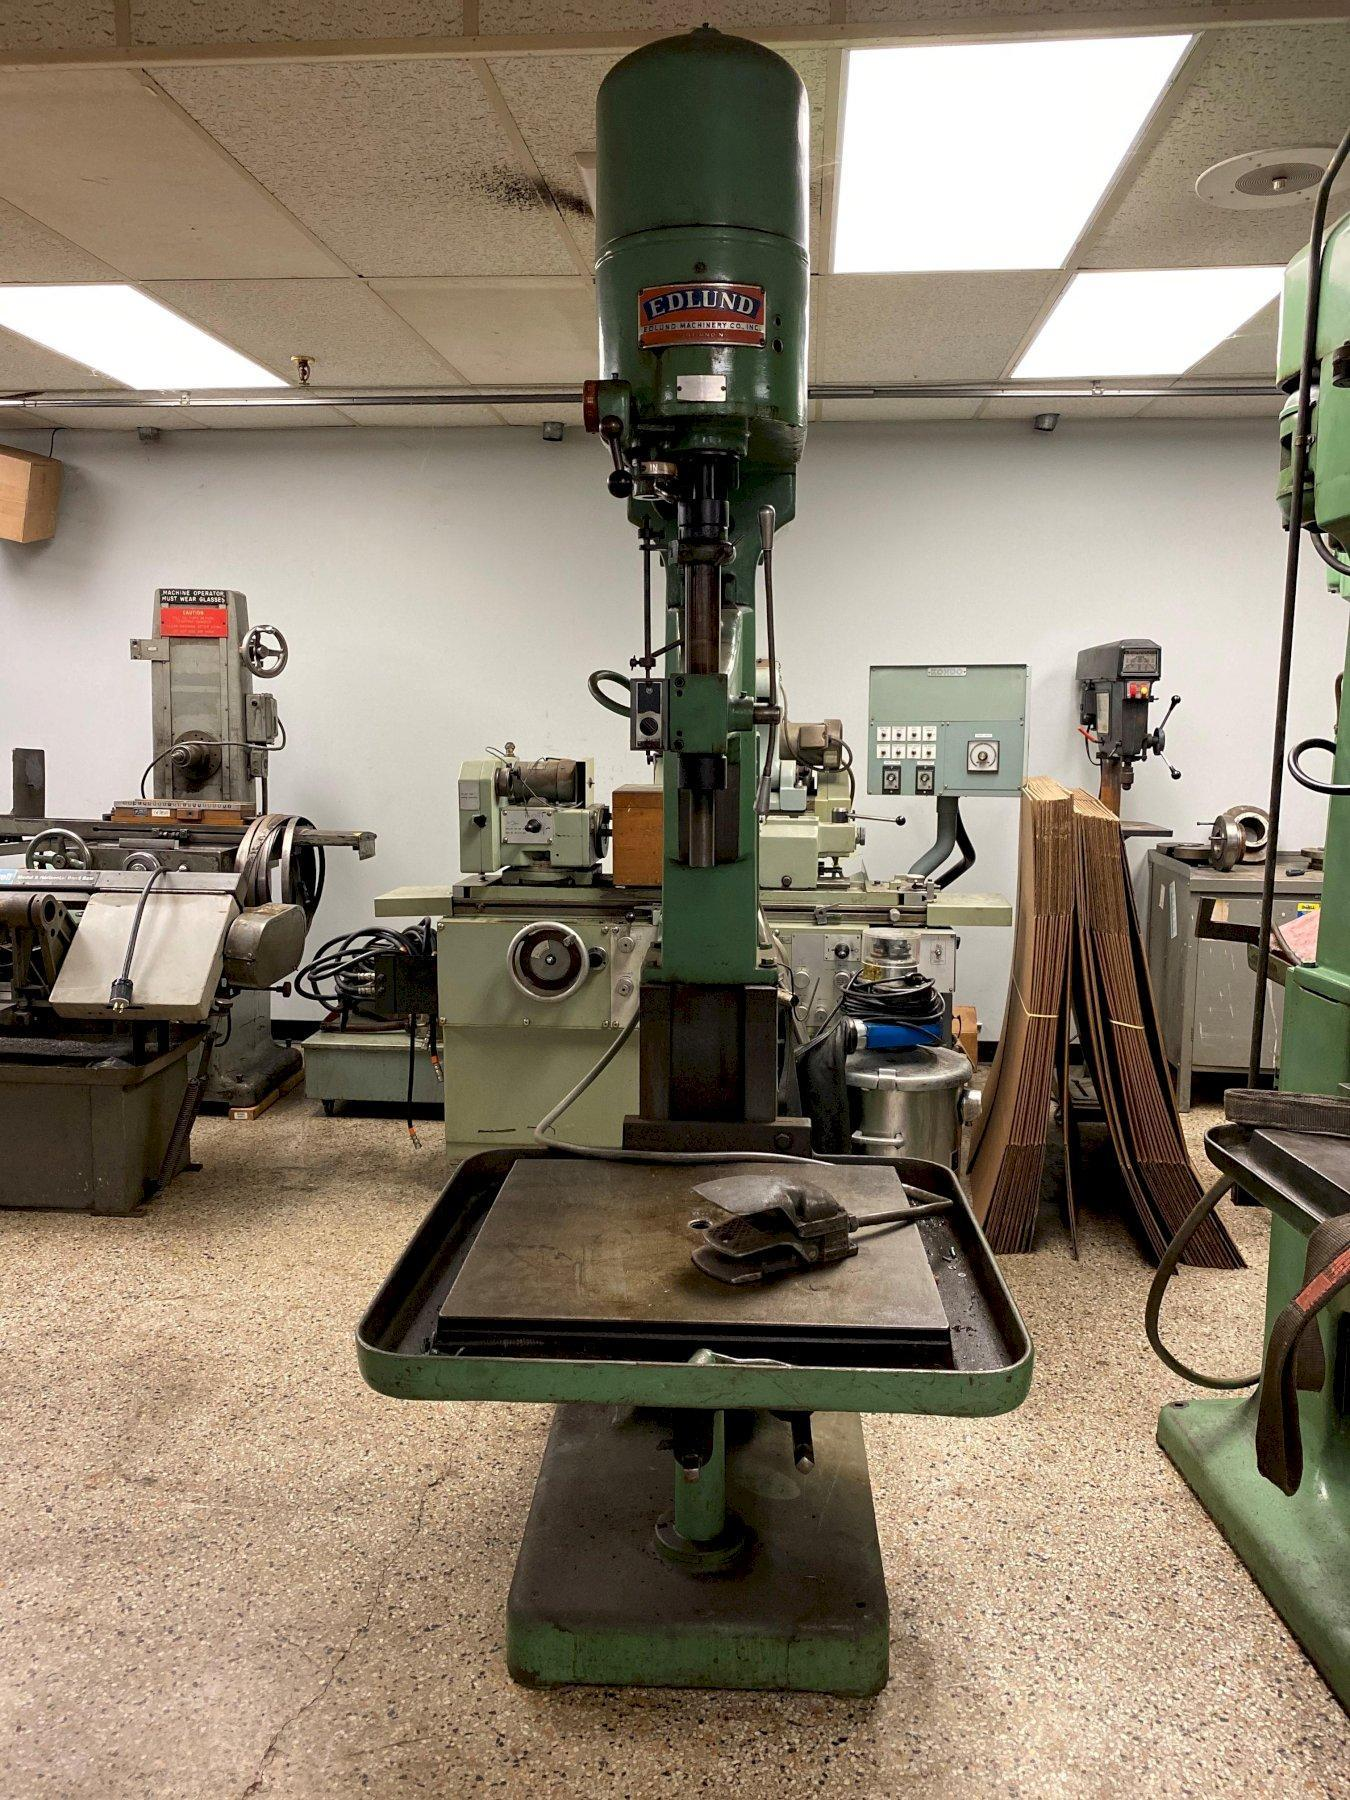 Edlund Model 2F-15 Drill Press, S/N 64329, New 1964, with Motor Reversing Tapping Attachment.